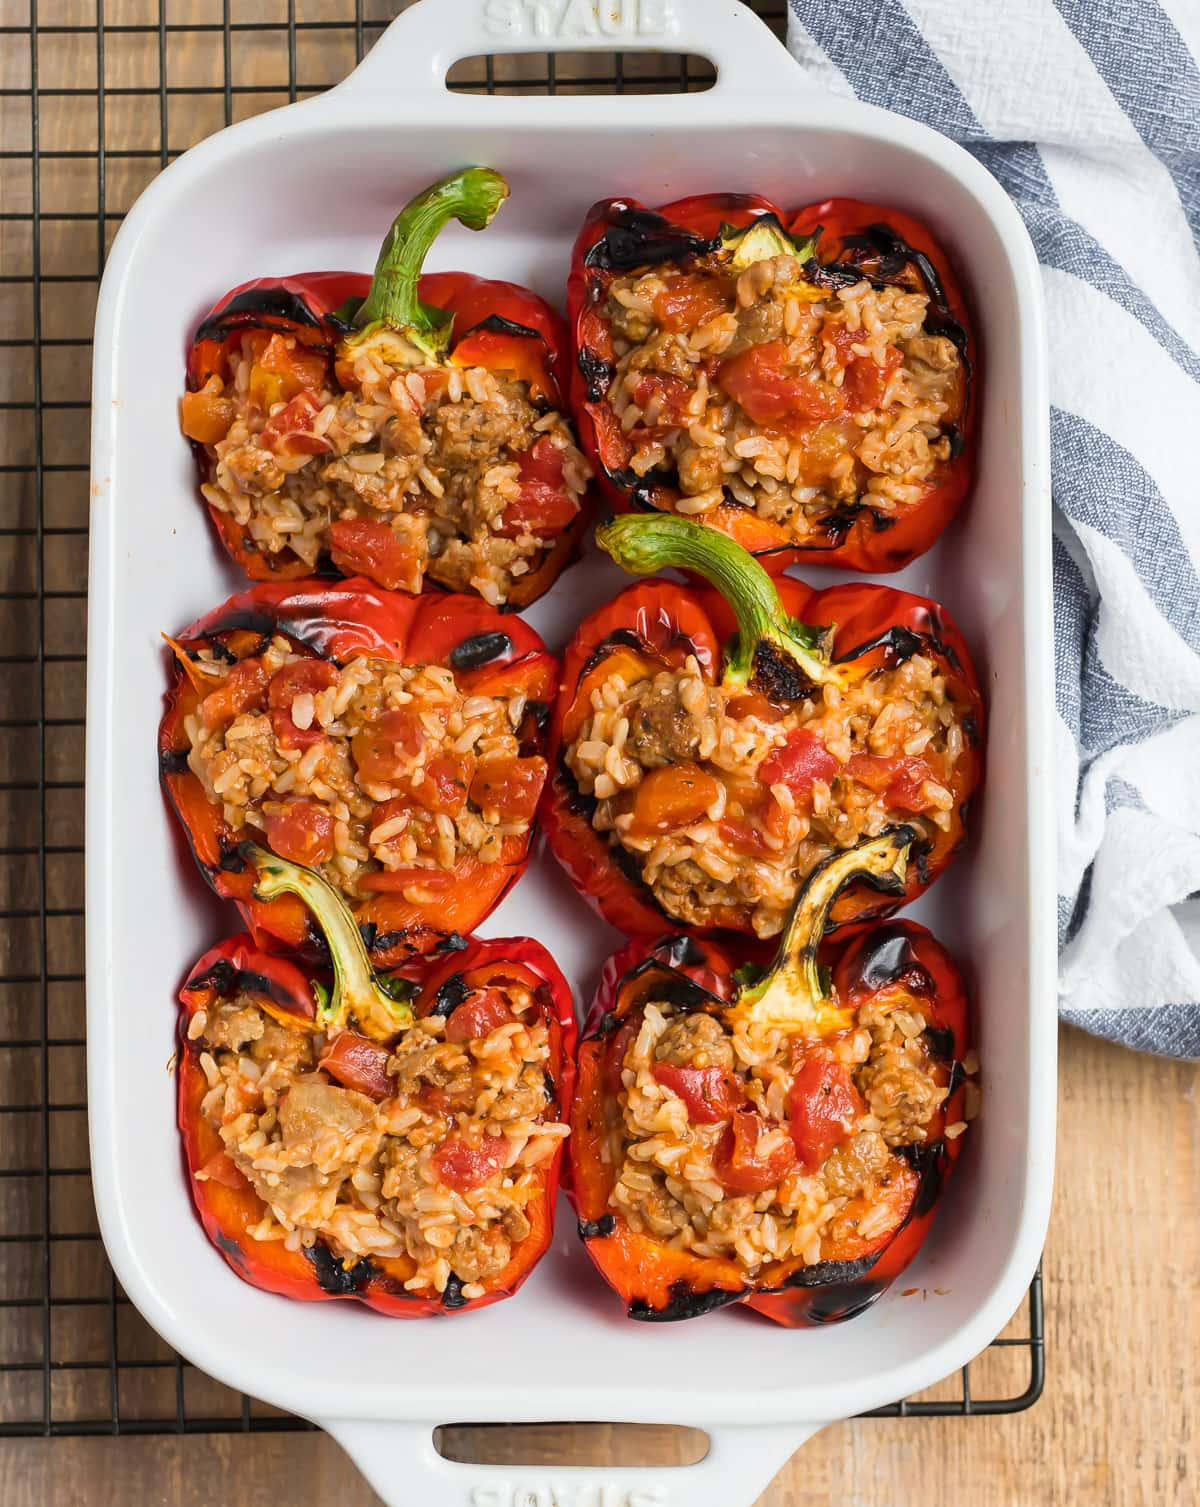 Grilled stuffed peppers in a baking dish